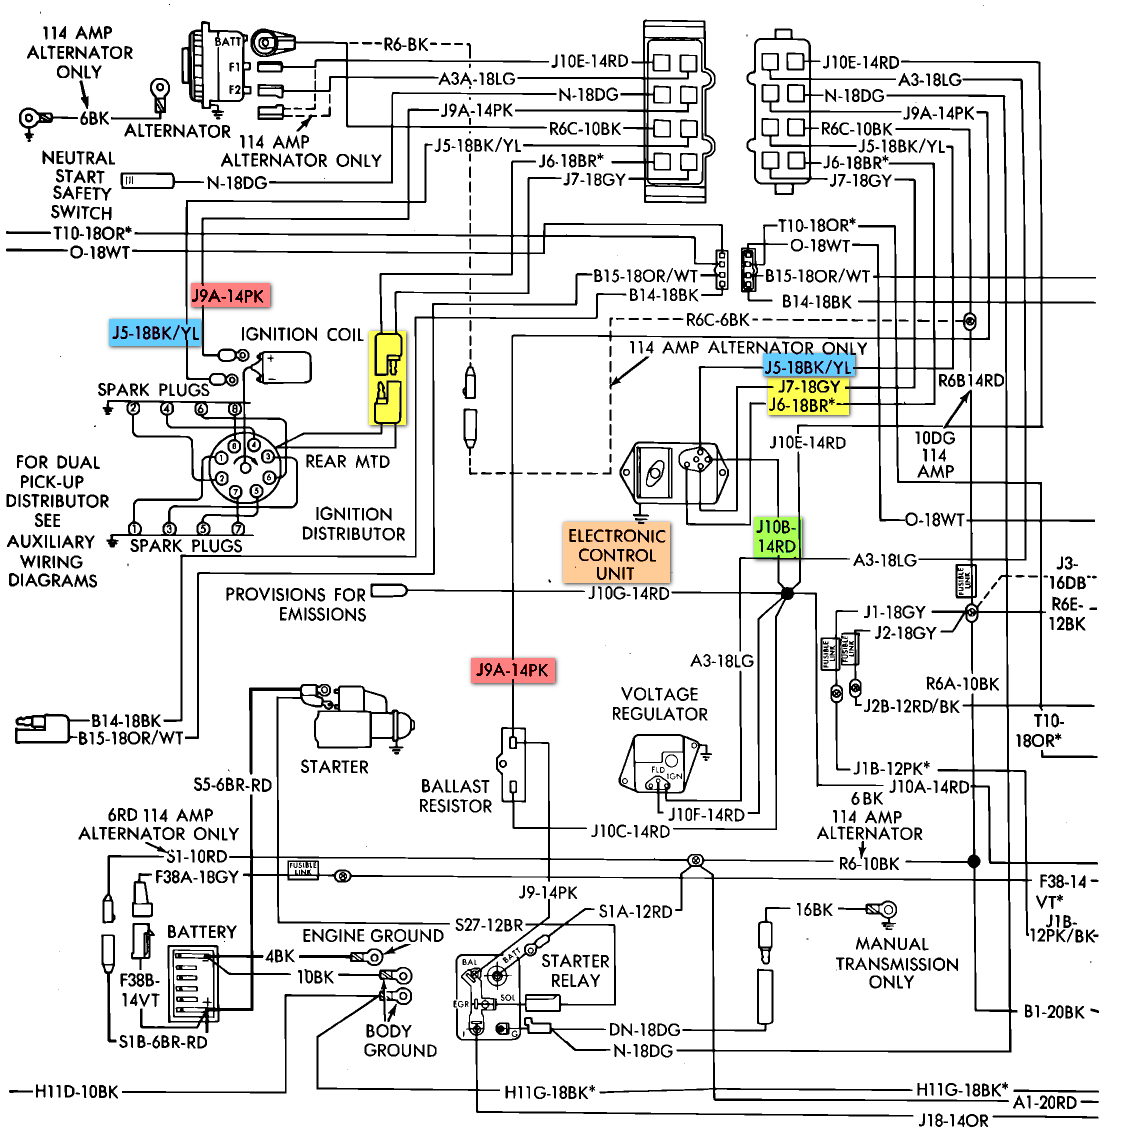 Winnebago Wiring Harness | Manual E-Books - Winnebago Motorhome Wiring Diagram